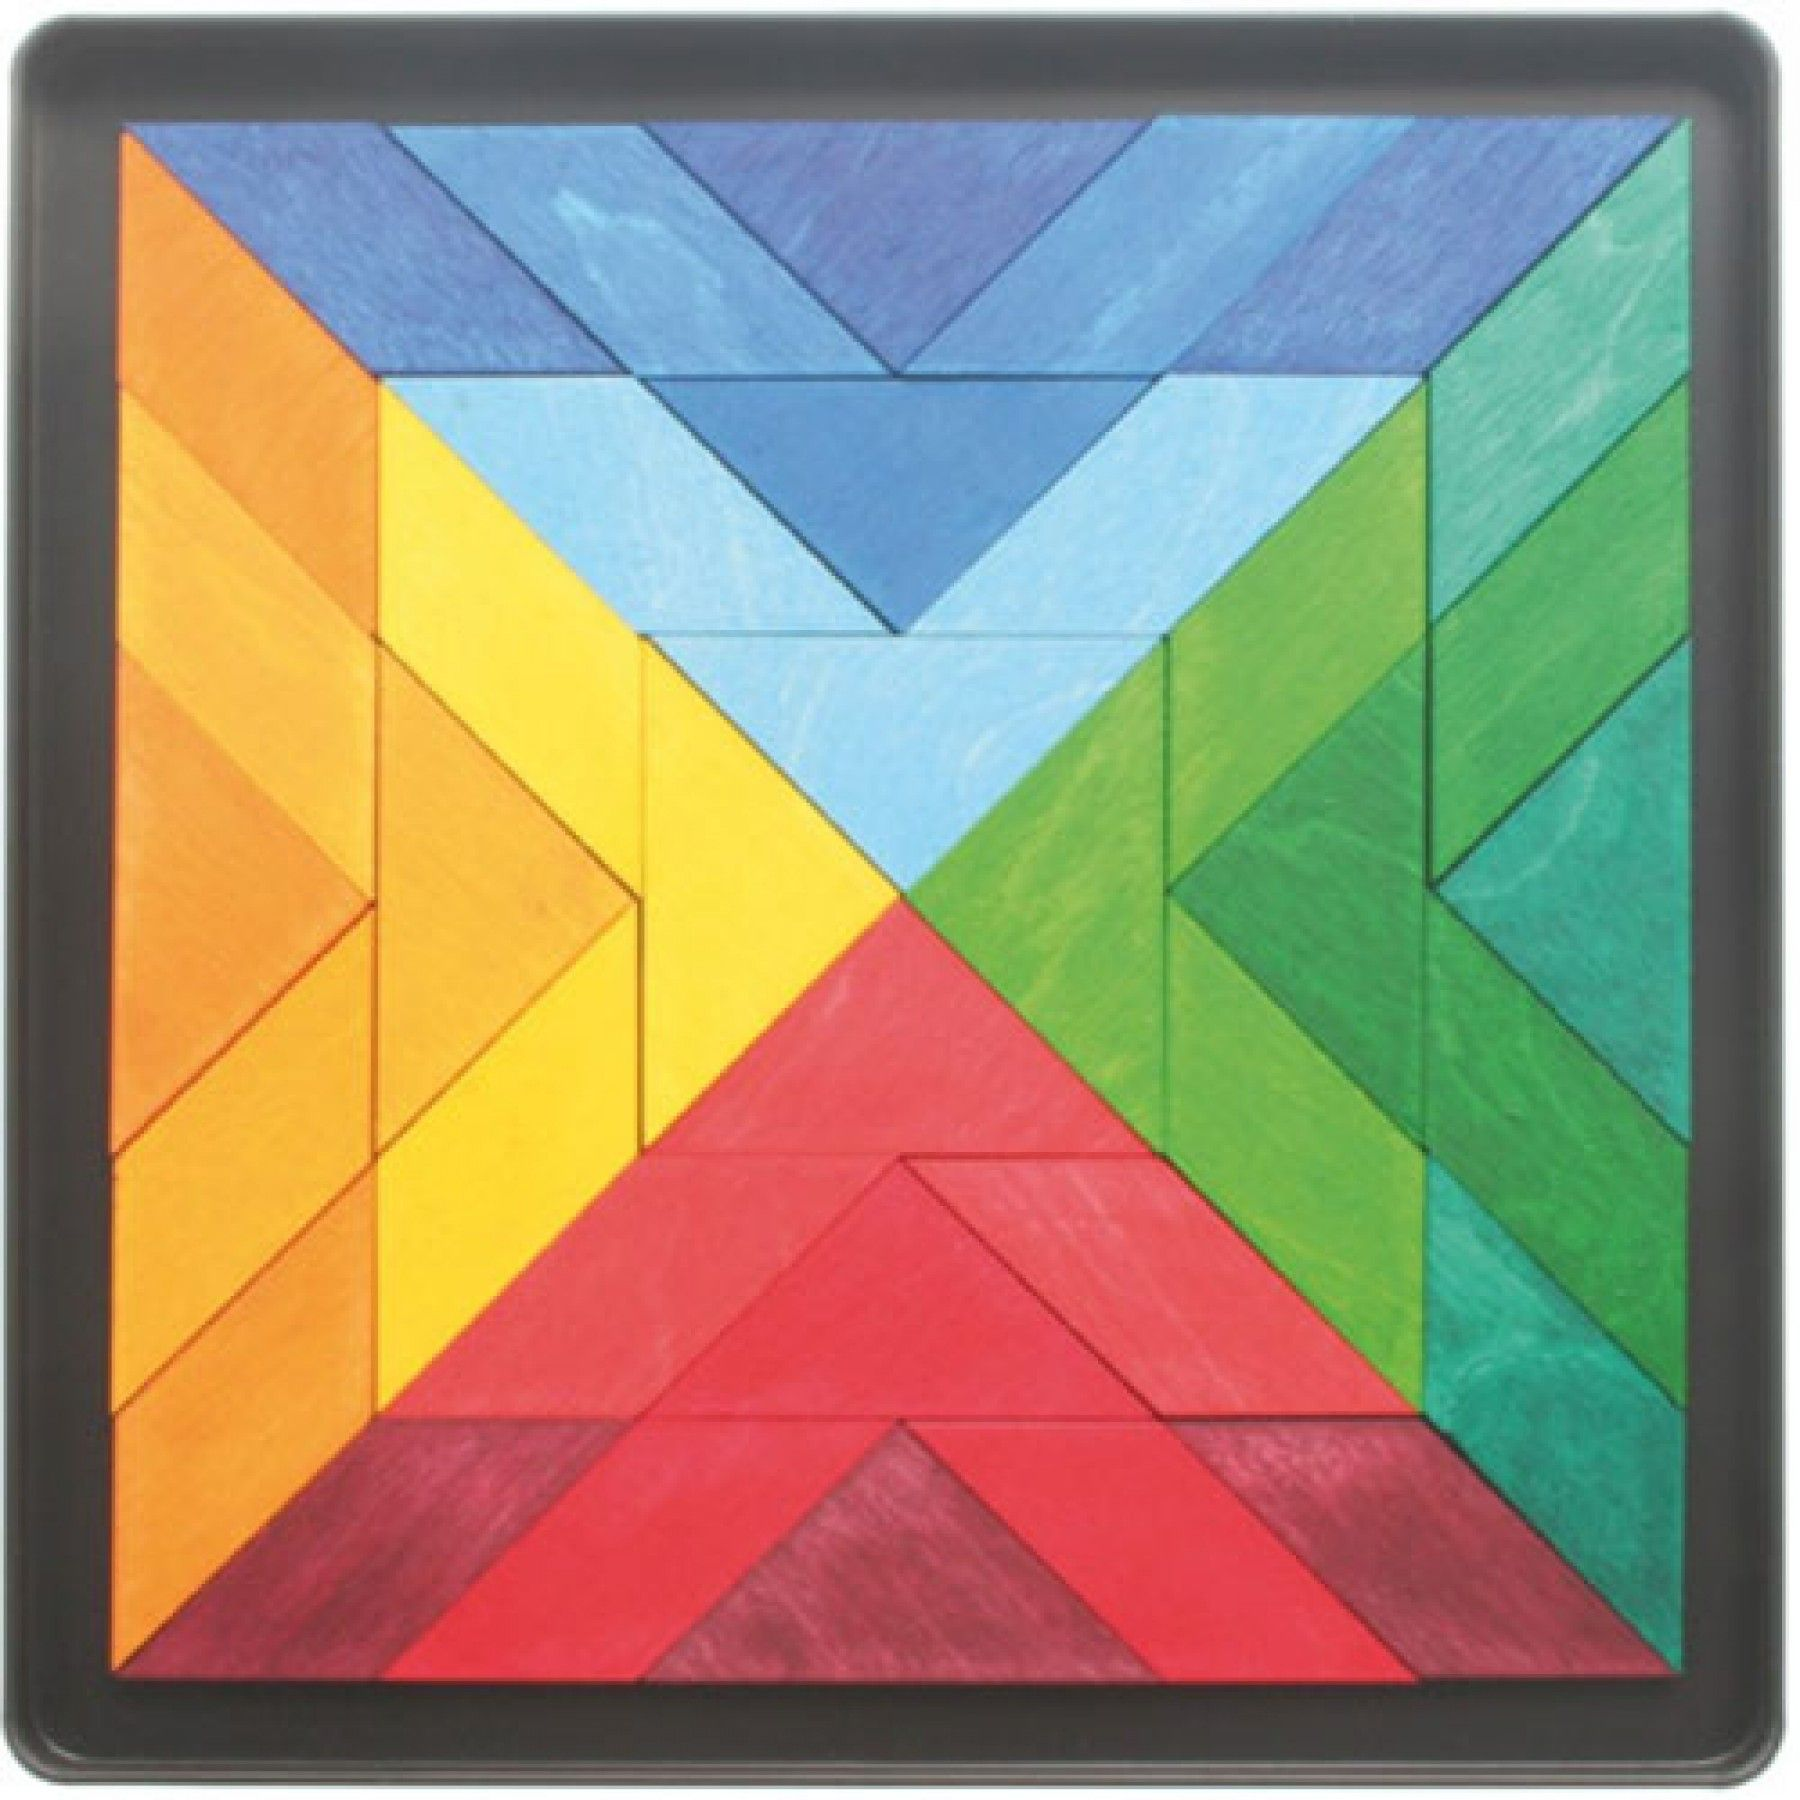 grimm's magneetpuzzel indian square 90100 | ilovespeelgoed.nl